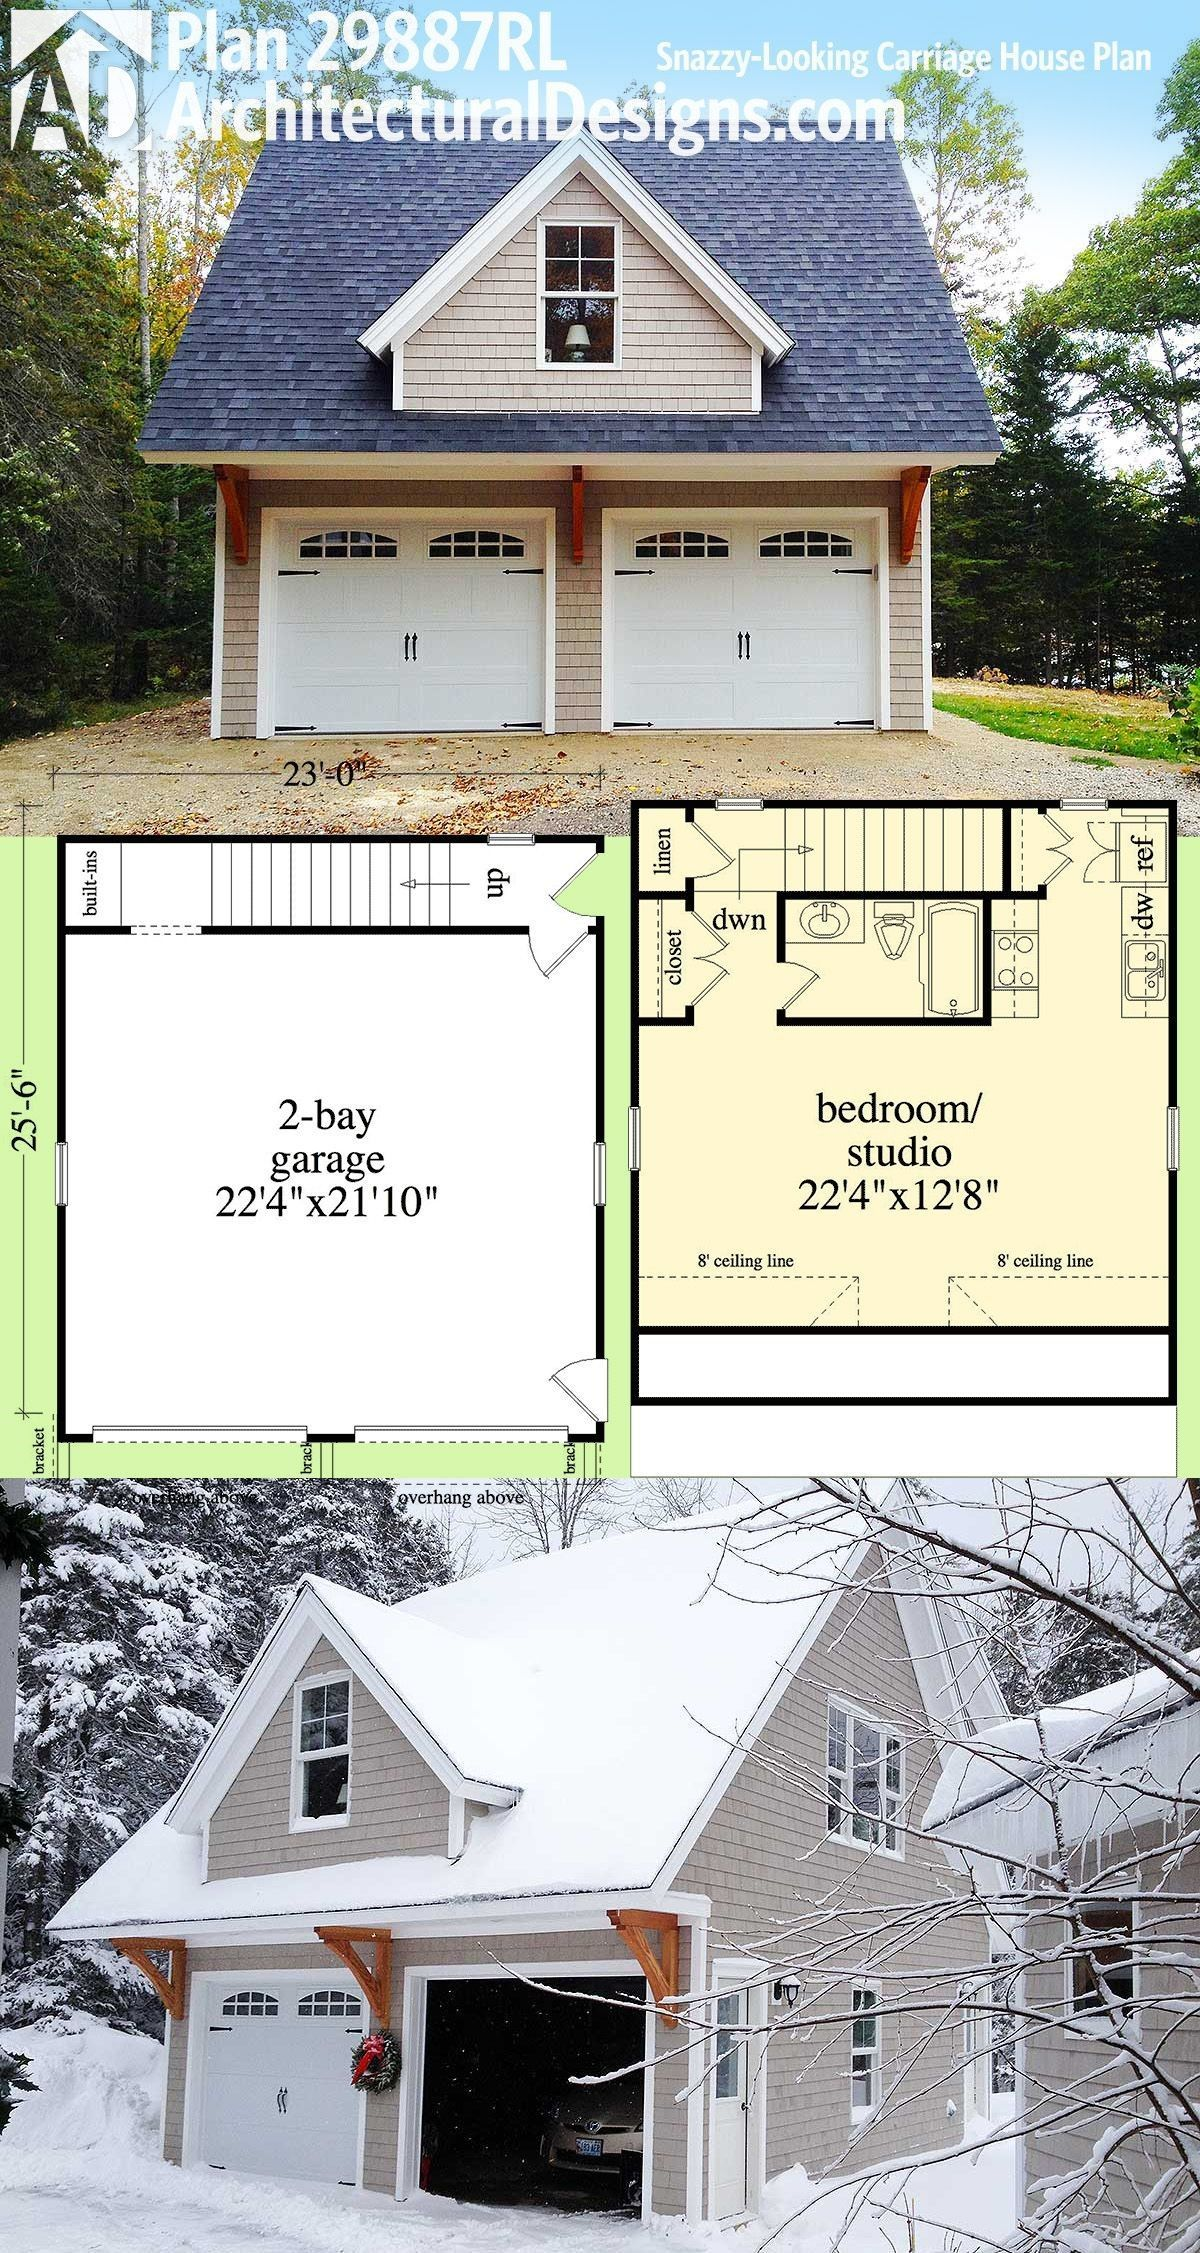 Shed DIY - Architectural Designs Carriage House Plan 29887RL can be ...